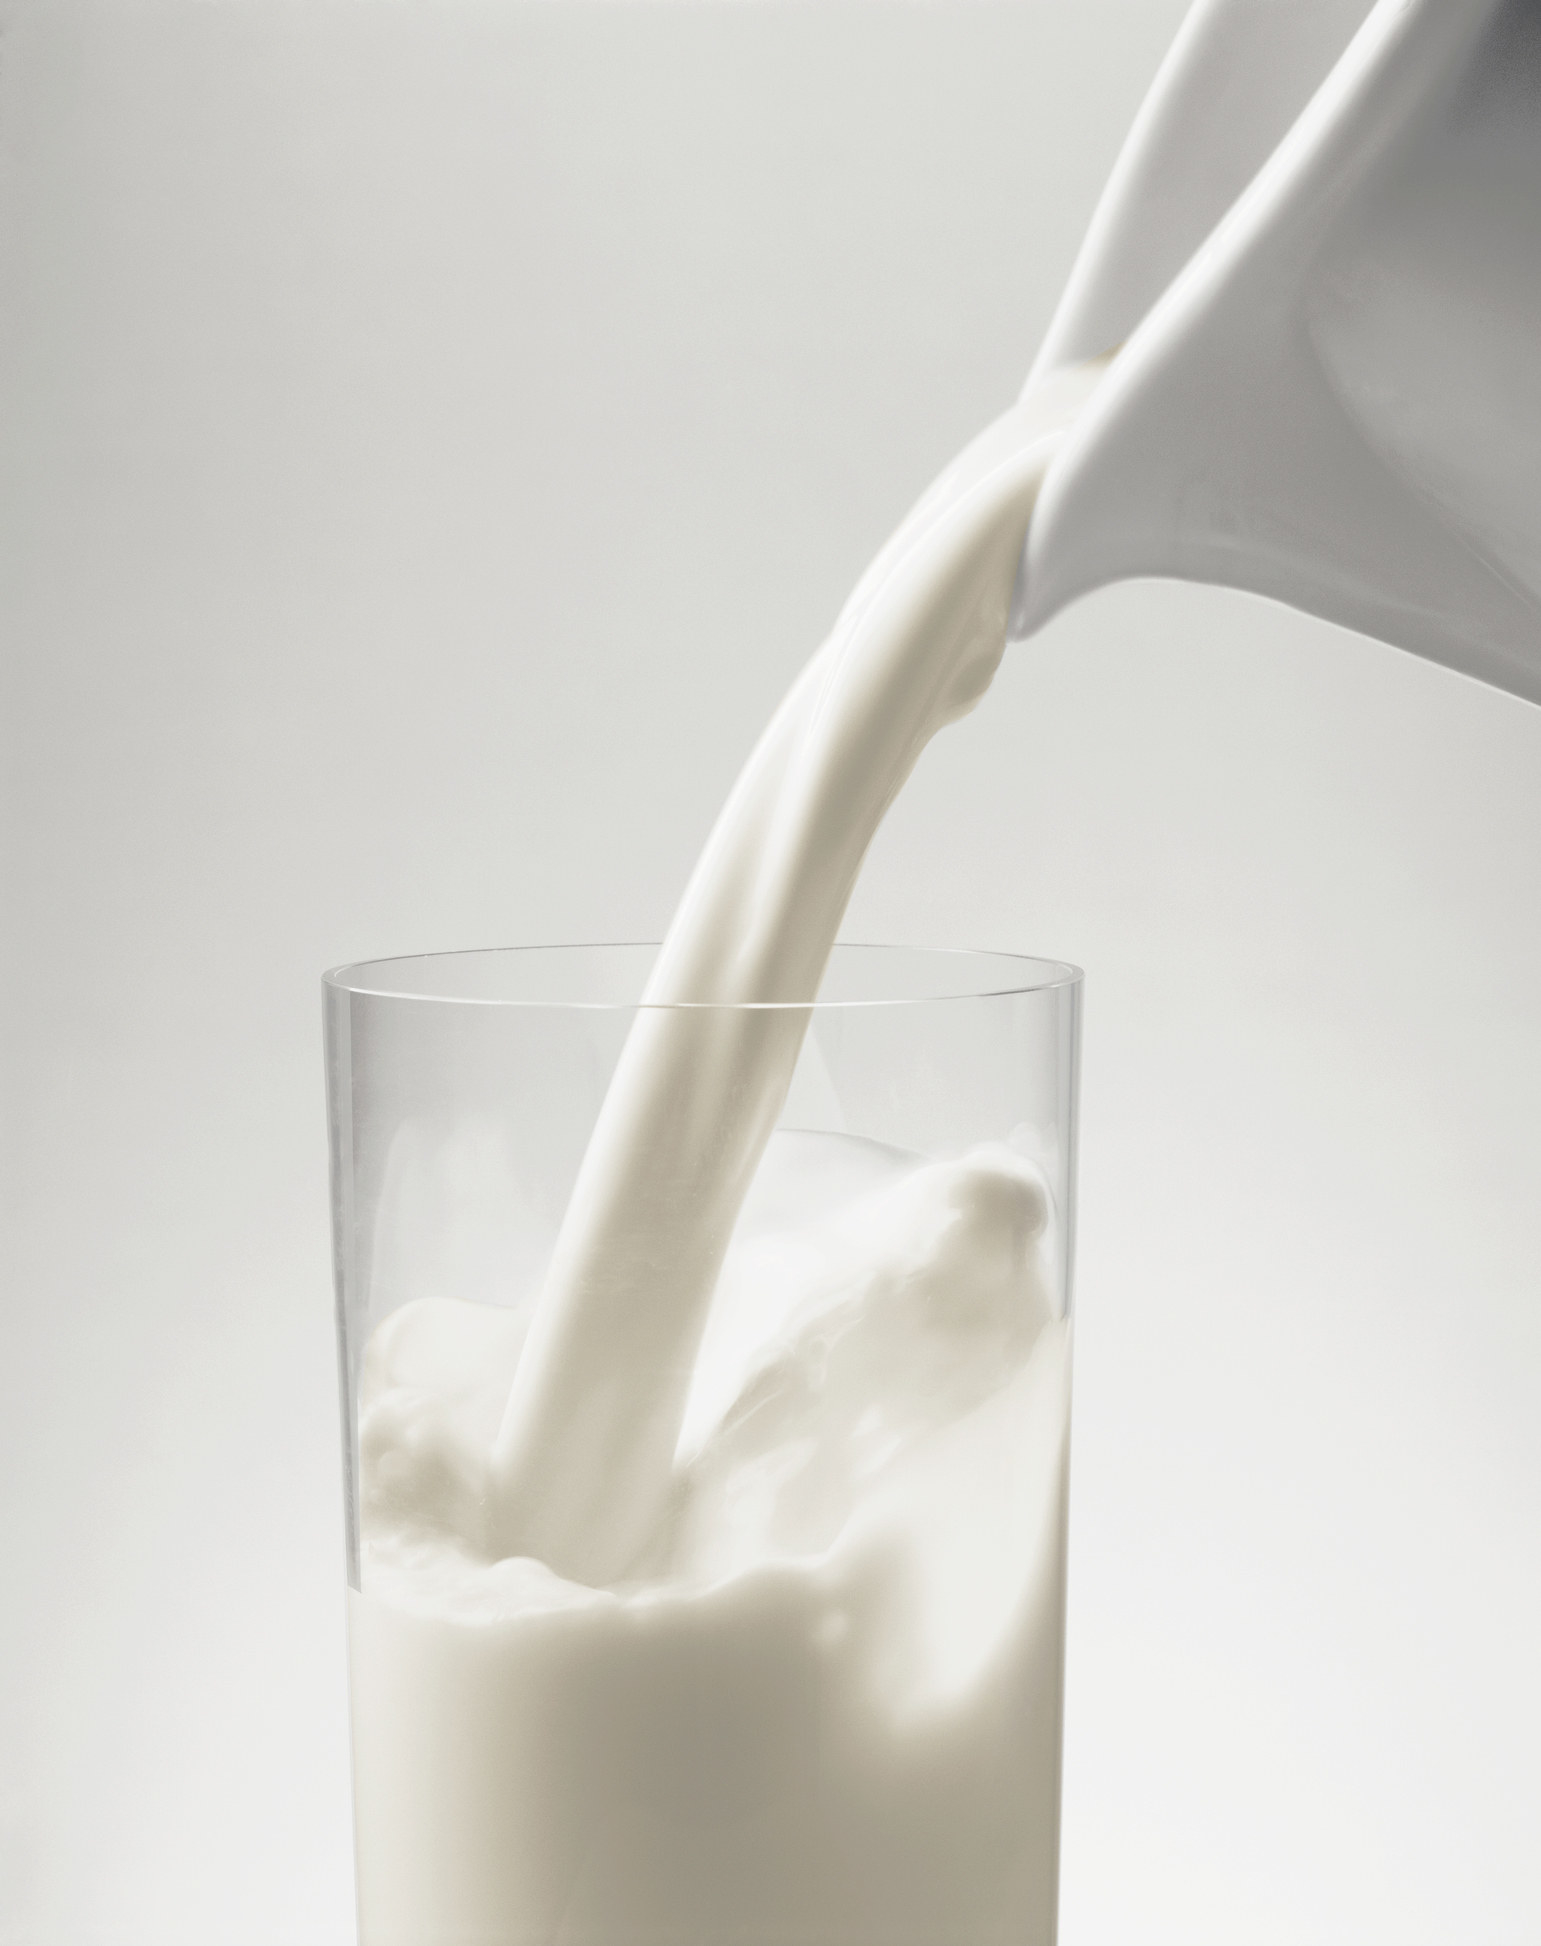 Pouring milk into a glass.